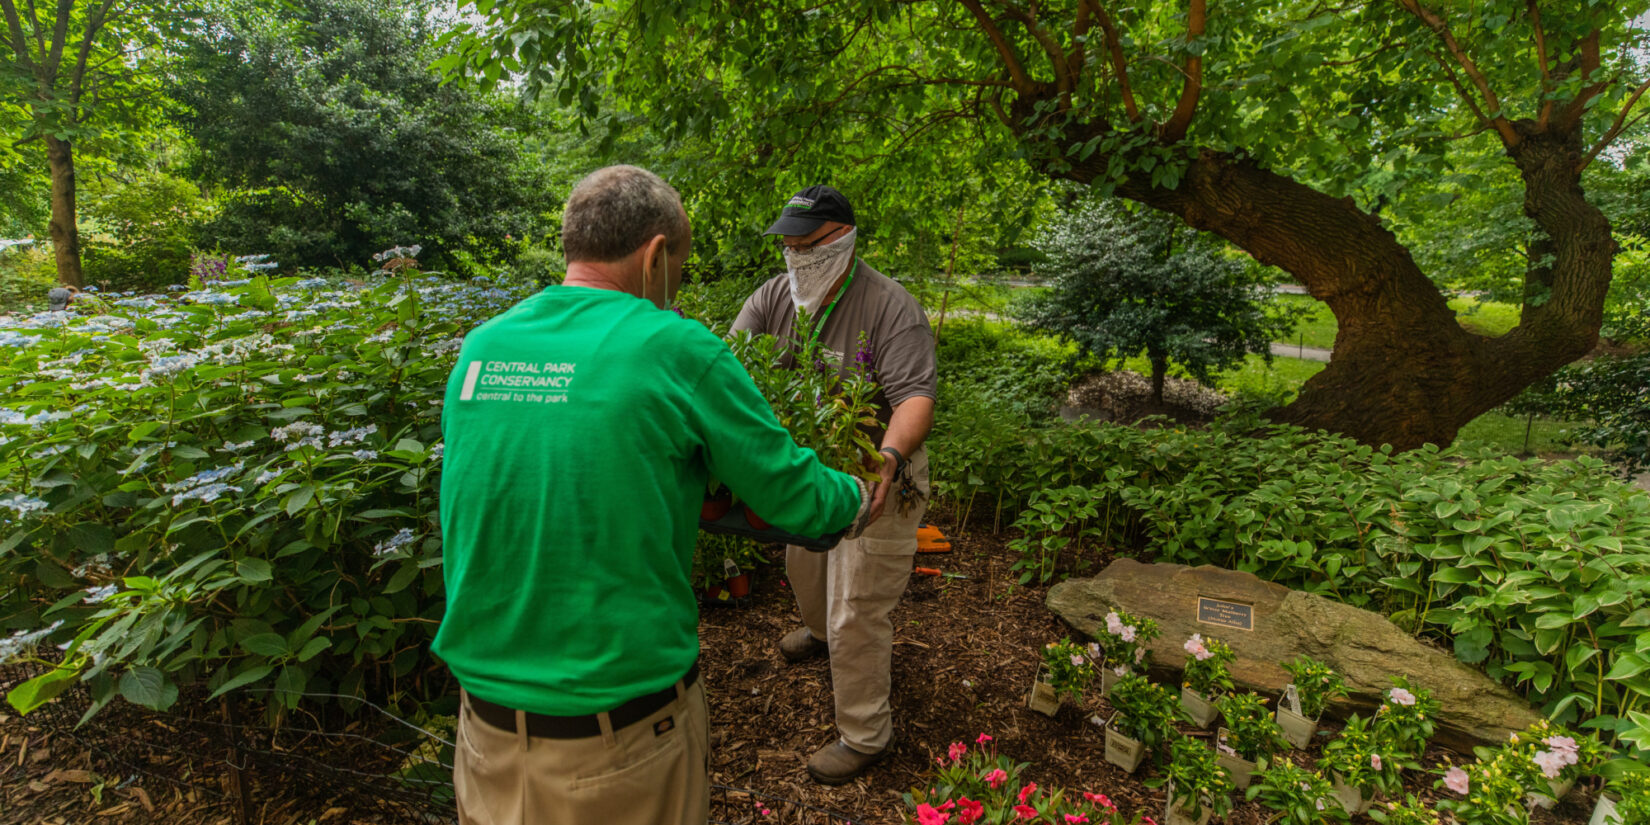 A volunteer and a Conservancy staff member exchange a tray of fresh plantings amidst a rustic landscape.